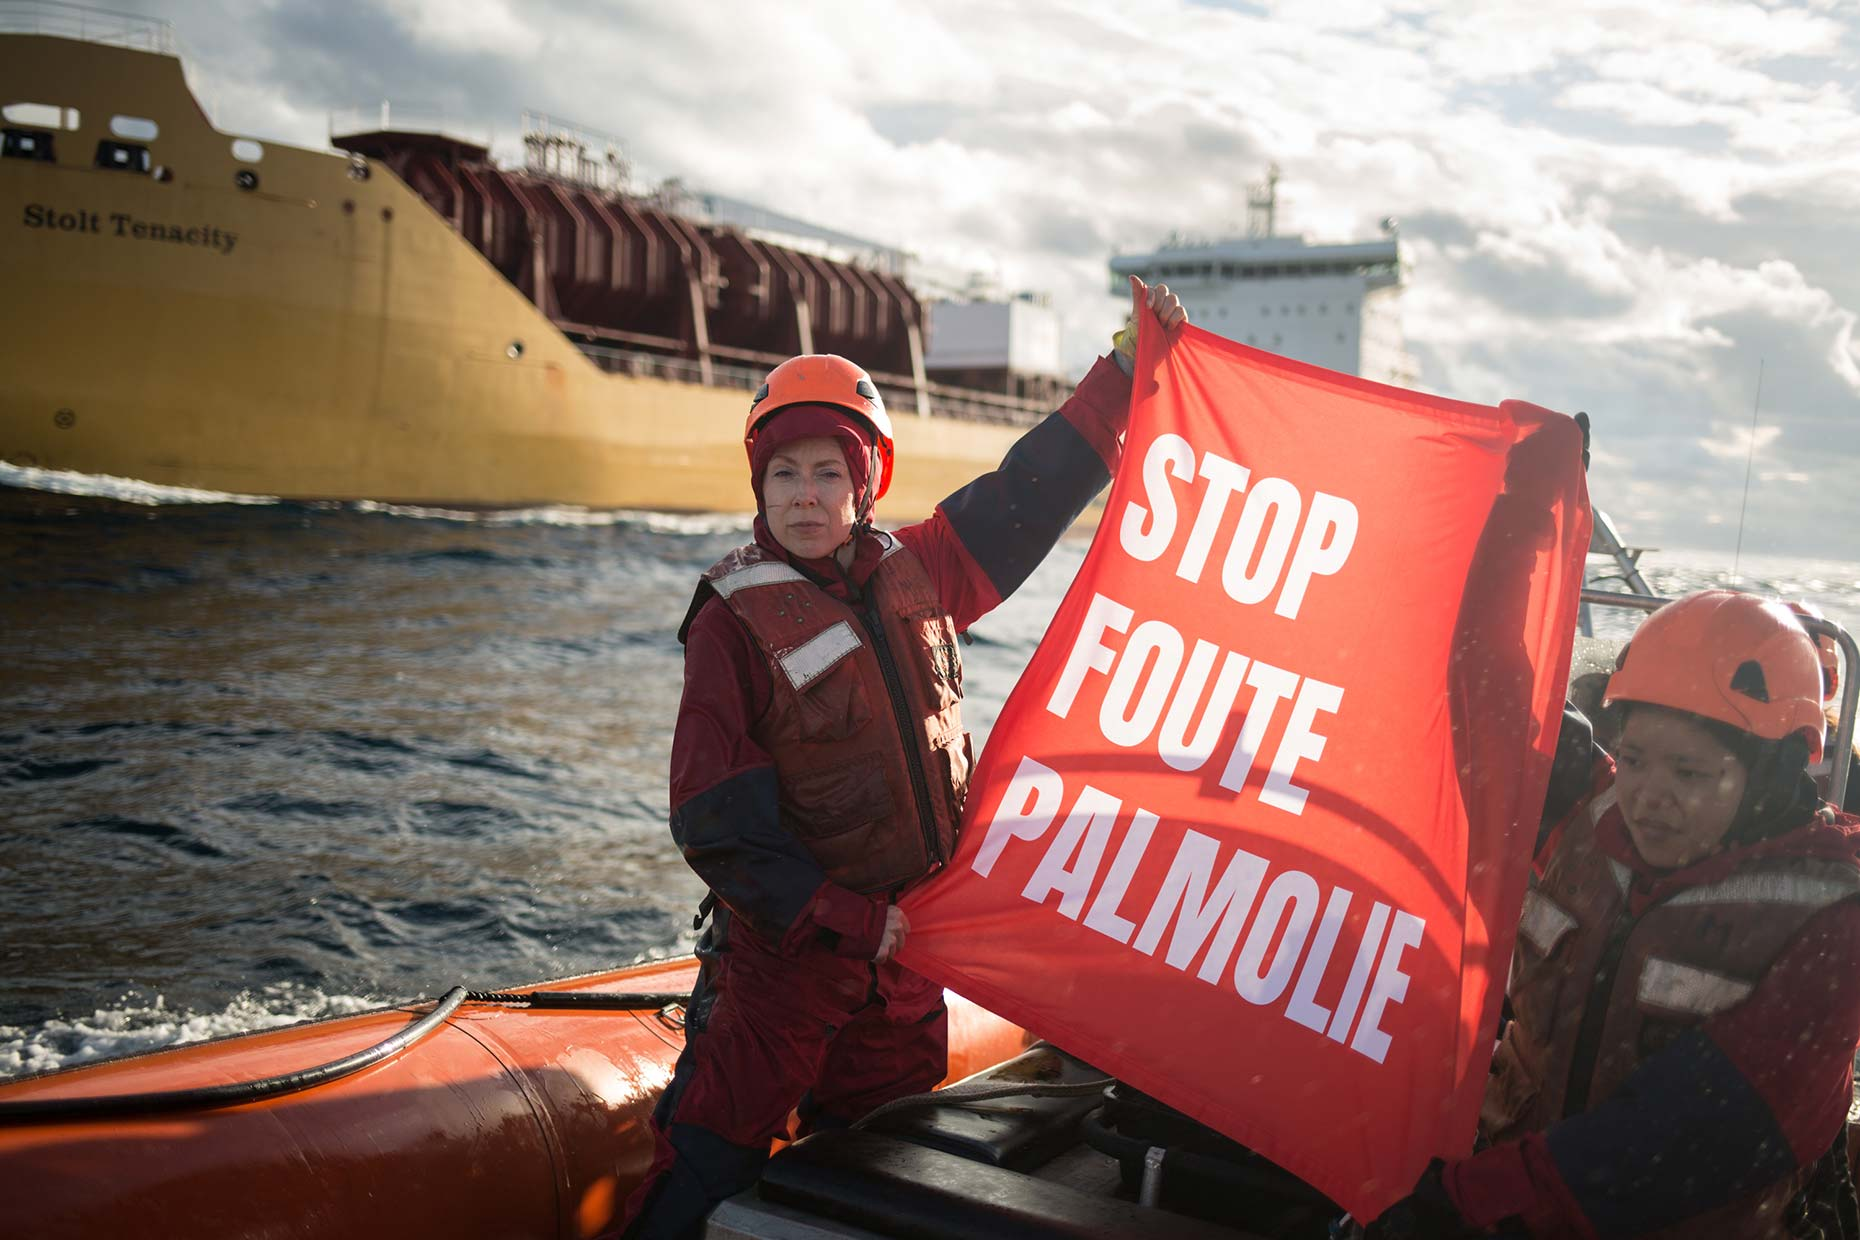 Action against palm oil by Greenpeace activists, by Scotland photographer